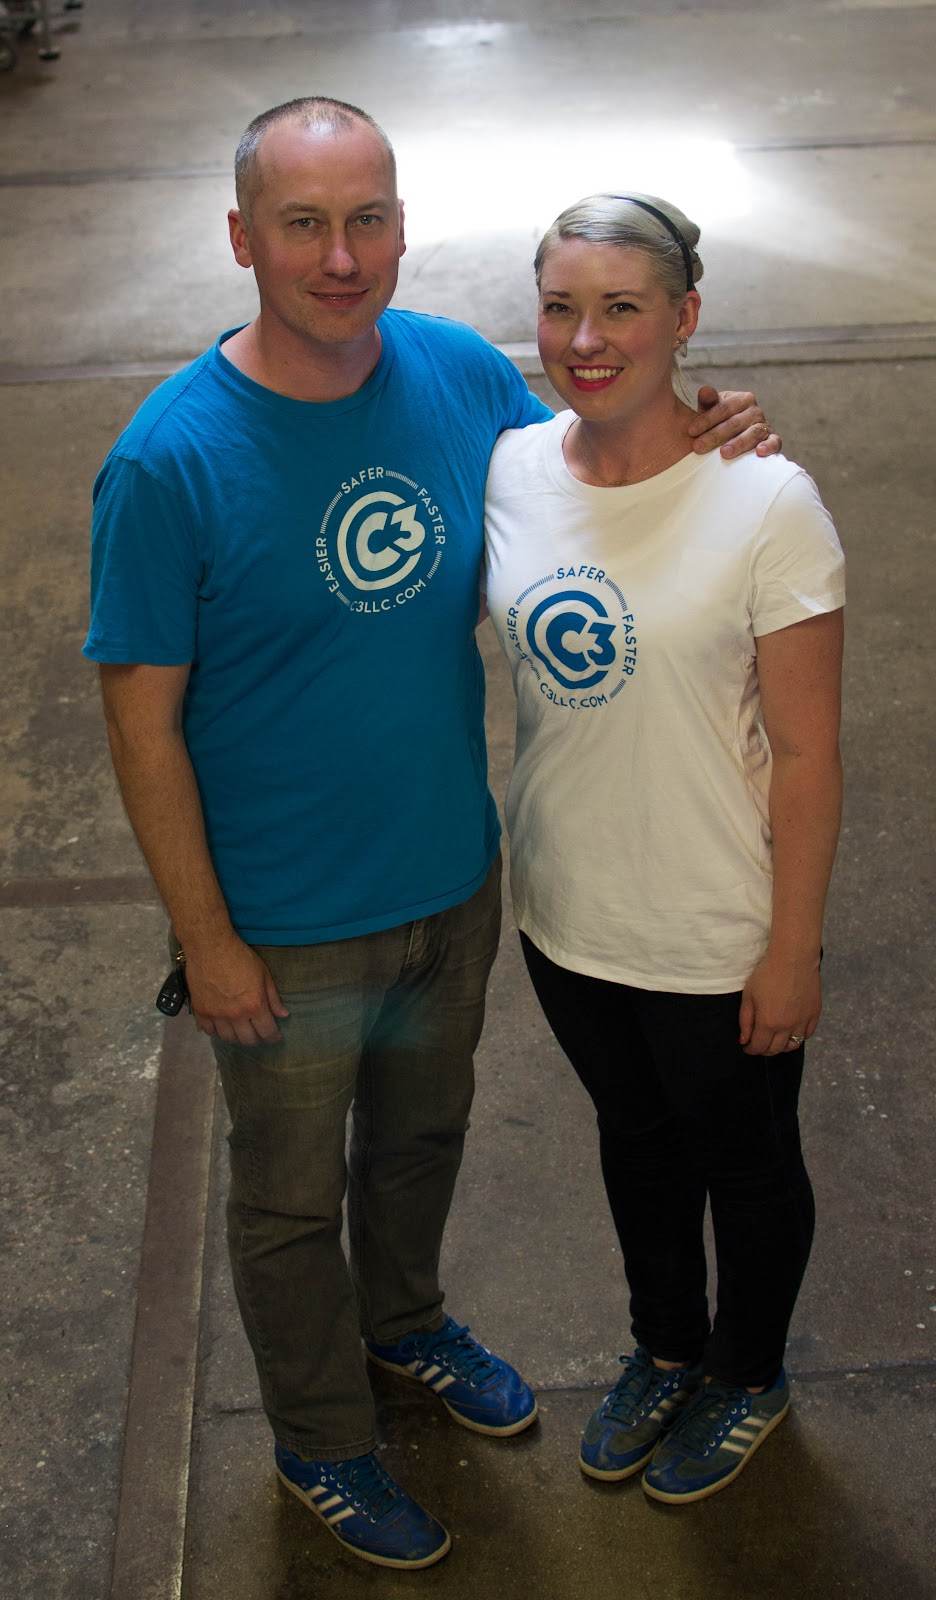 Justin & Kassie Grimes, owners of C3 LLC